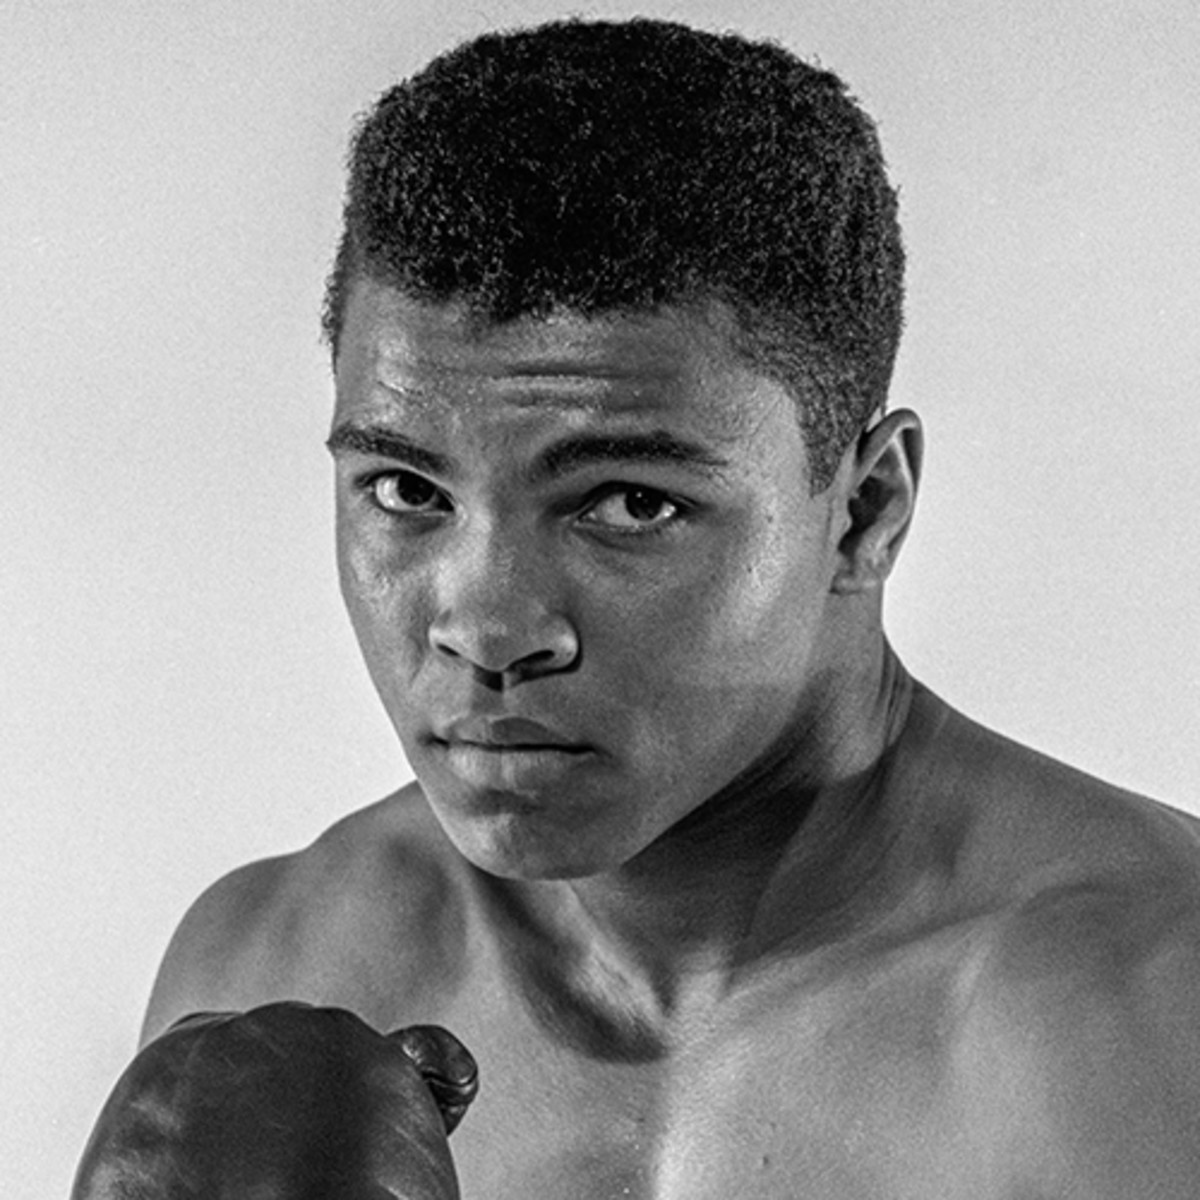 muhammad_ali_photo_by_stanley_weston_archive_photos_getty_482857506